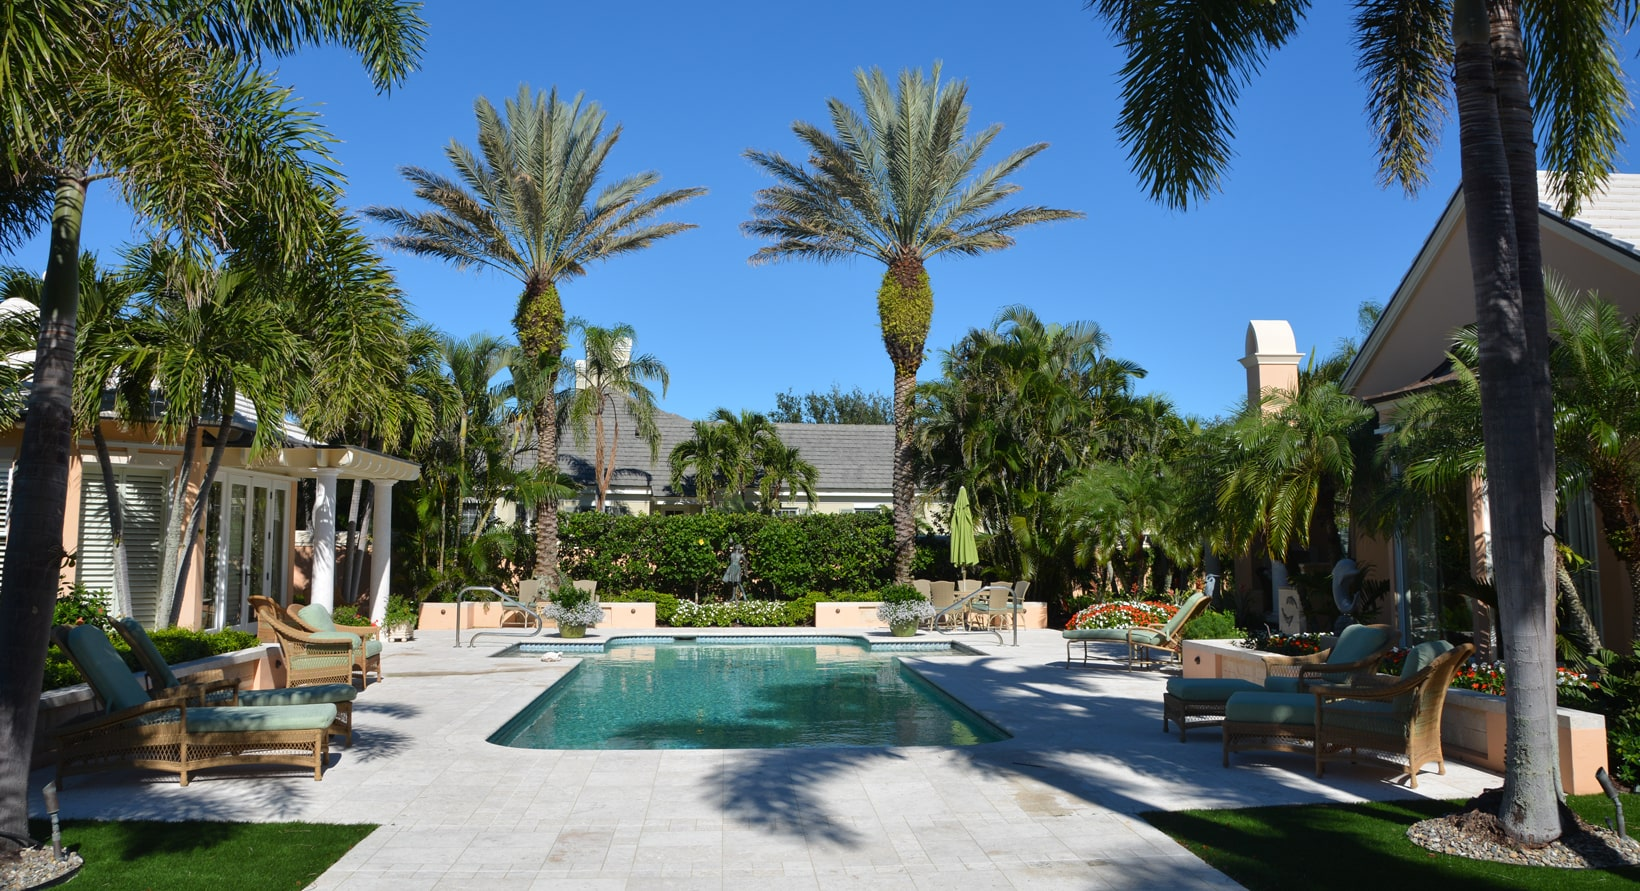 Aiello landscape vero beach pool landscaping